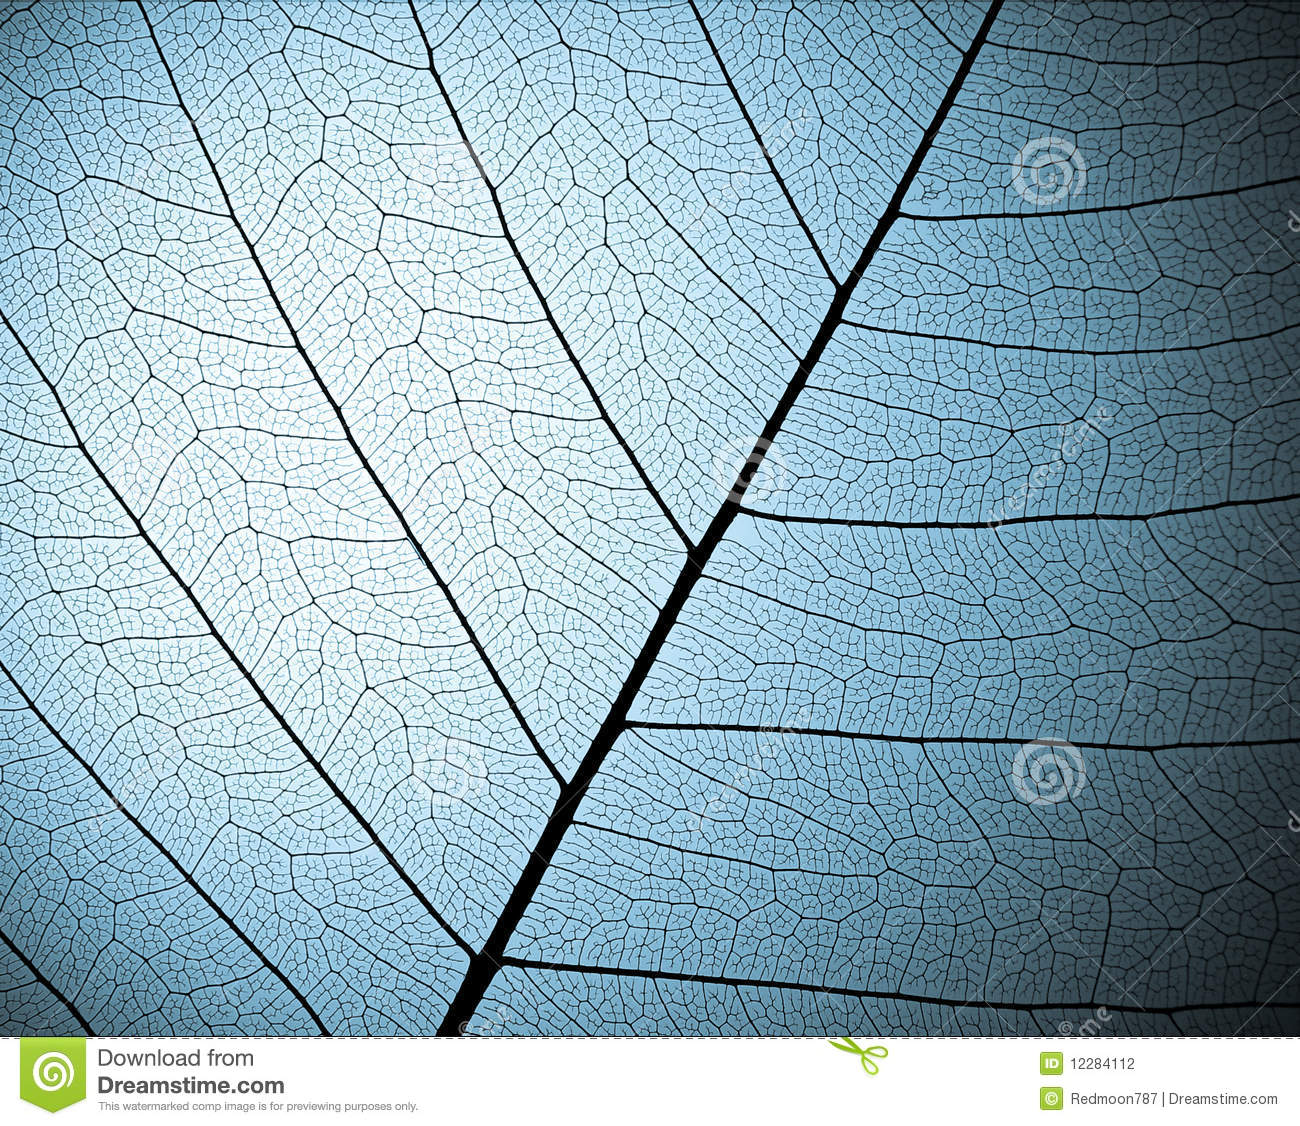 Skeleton leaf textured background close up